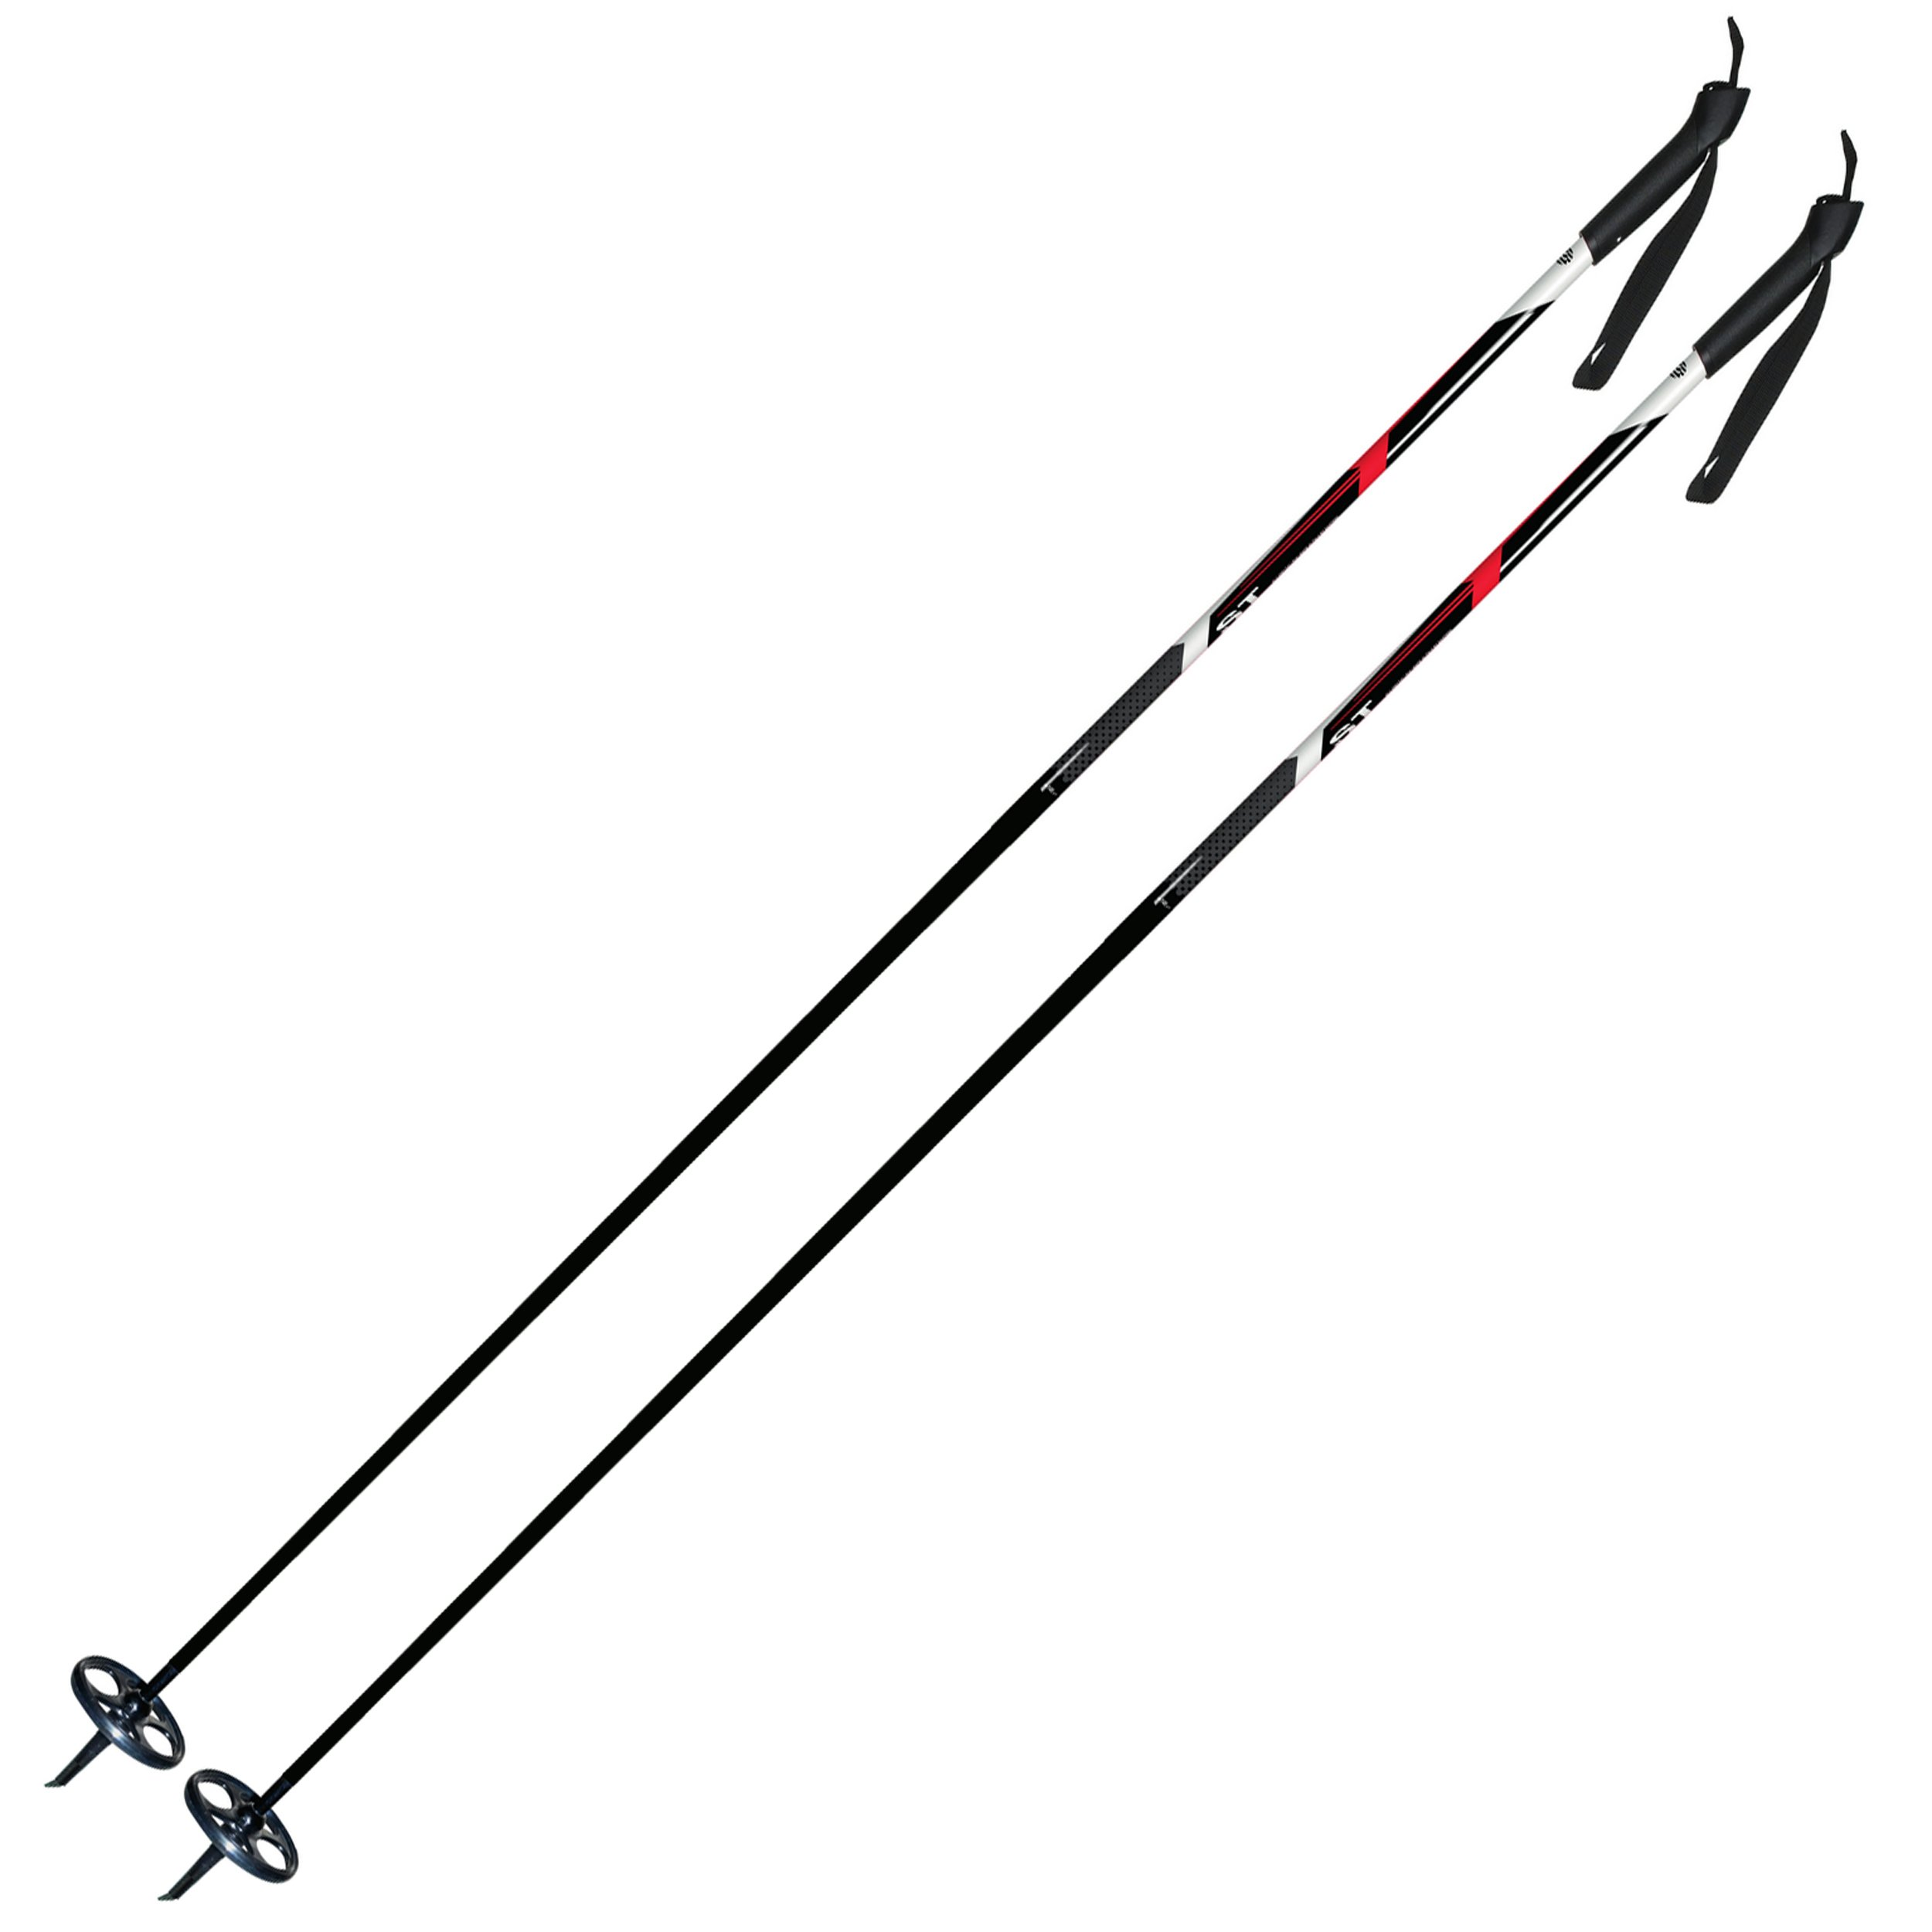 Alpina Sports ASC-ST Snowflake Cross-Country Nordic Ski Poles with Round Baskets, 145cm, Pr. by Alpina